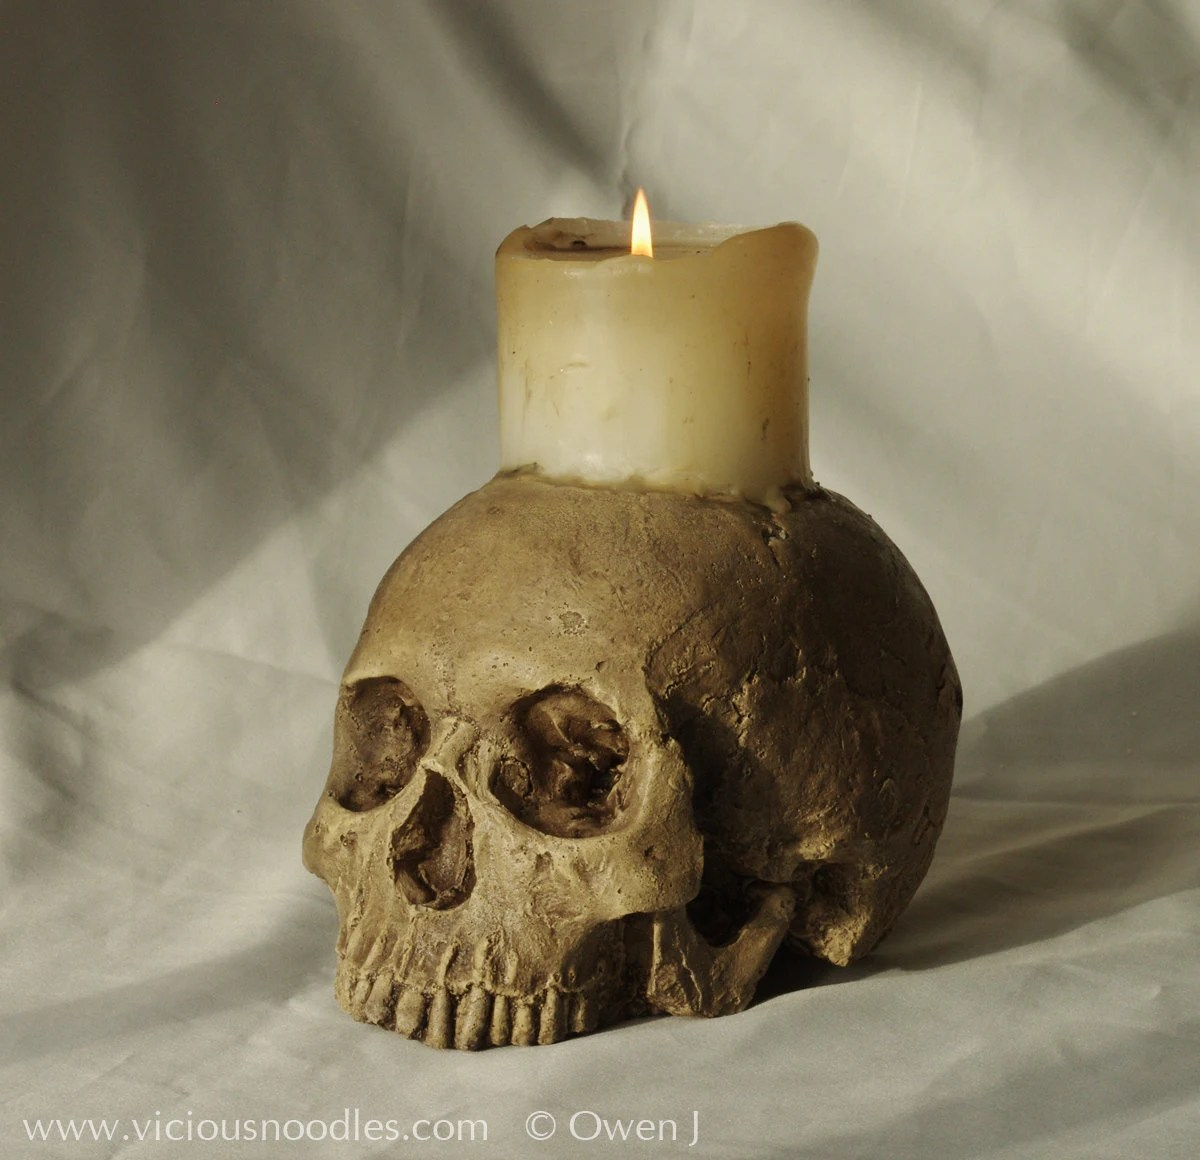 SKULL CANDLE HOLDER full size human skull candle by